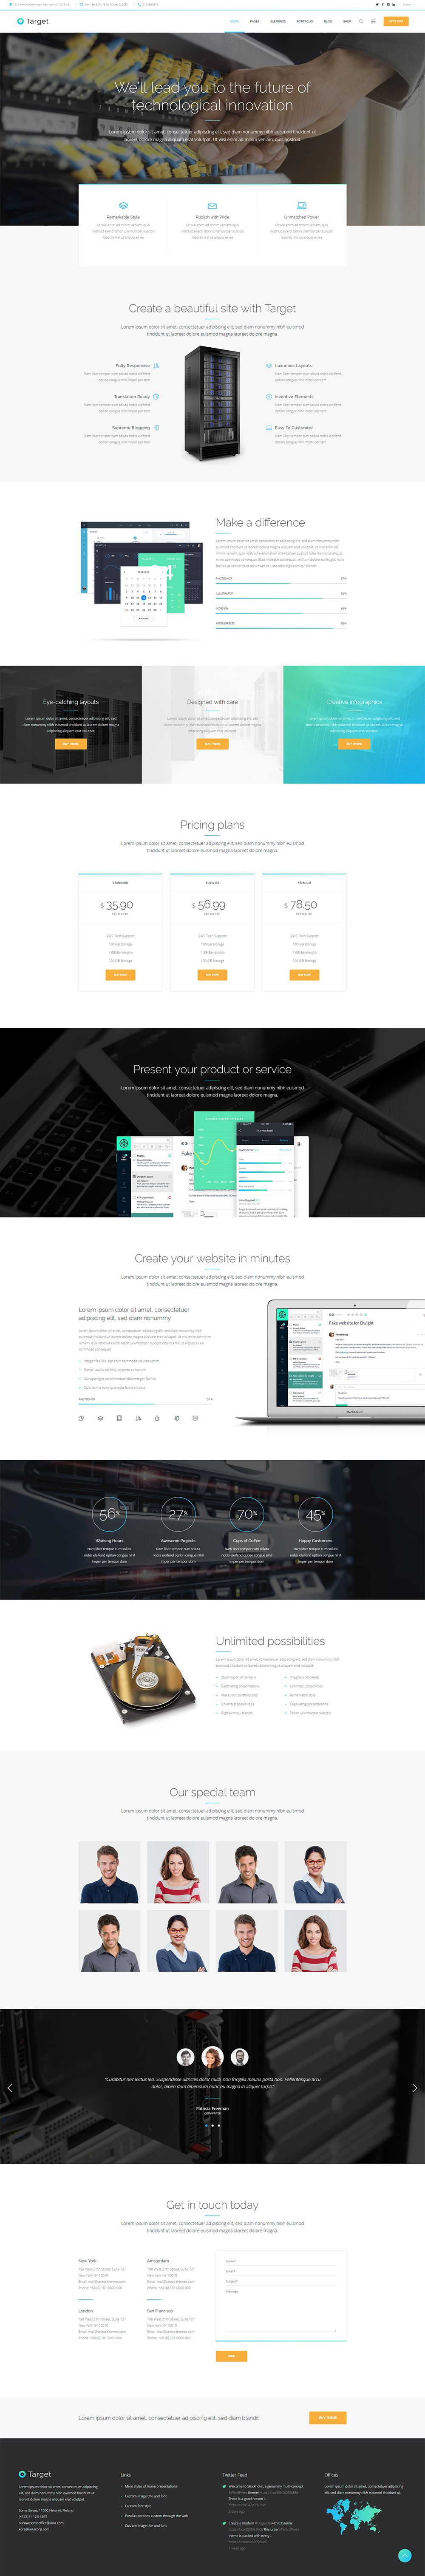 Present Your It Business In All Its Glory With Target Wordpress Theme Wordpress Theme Layout Business Wordpress Themes Web Design Graphic Design Projects